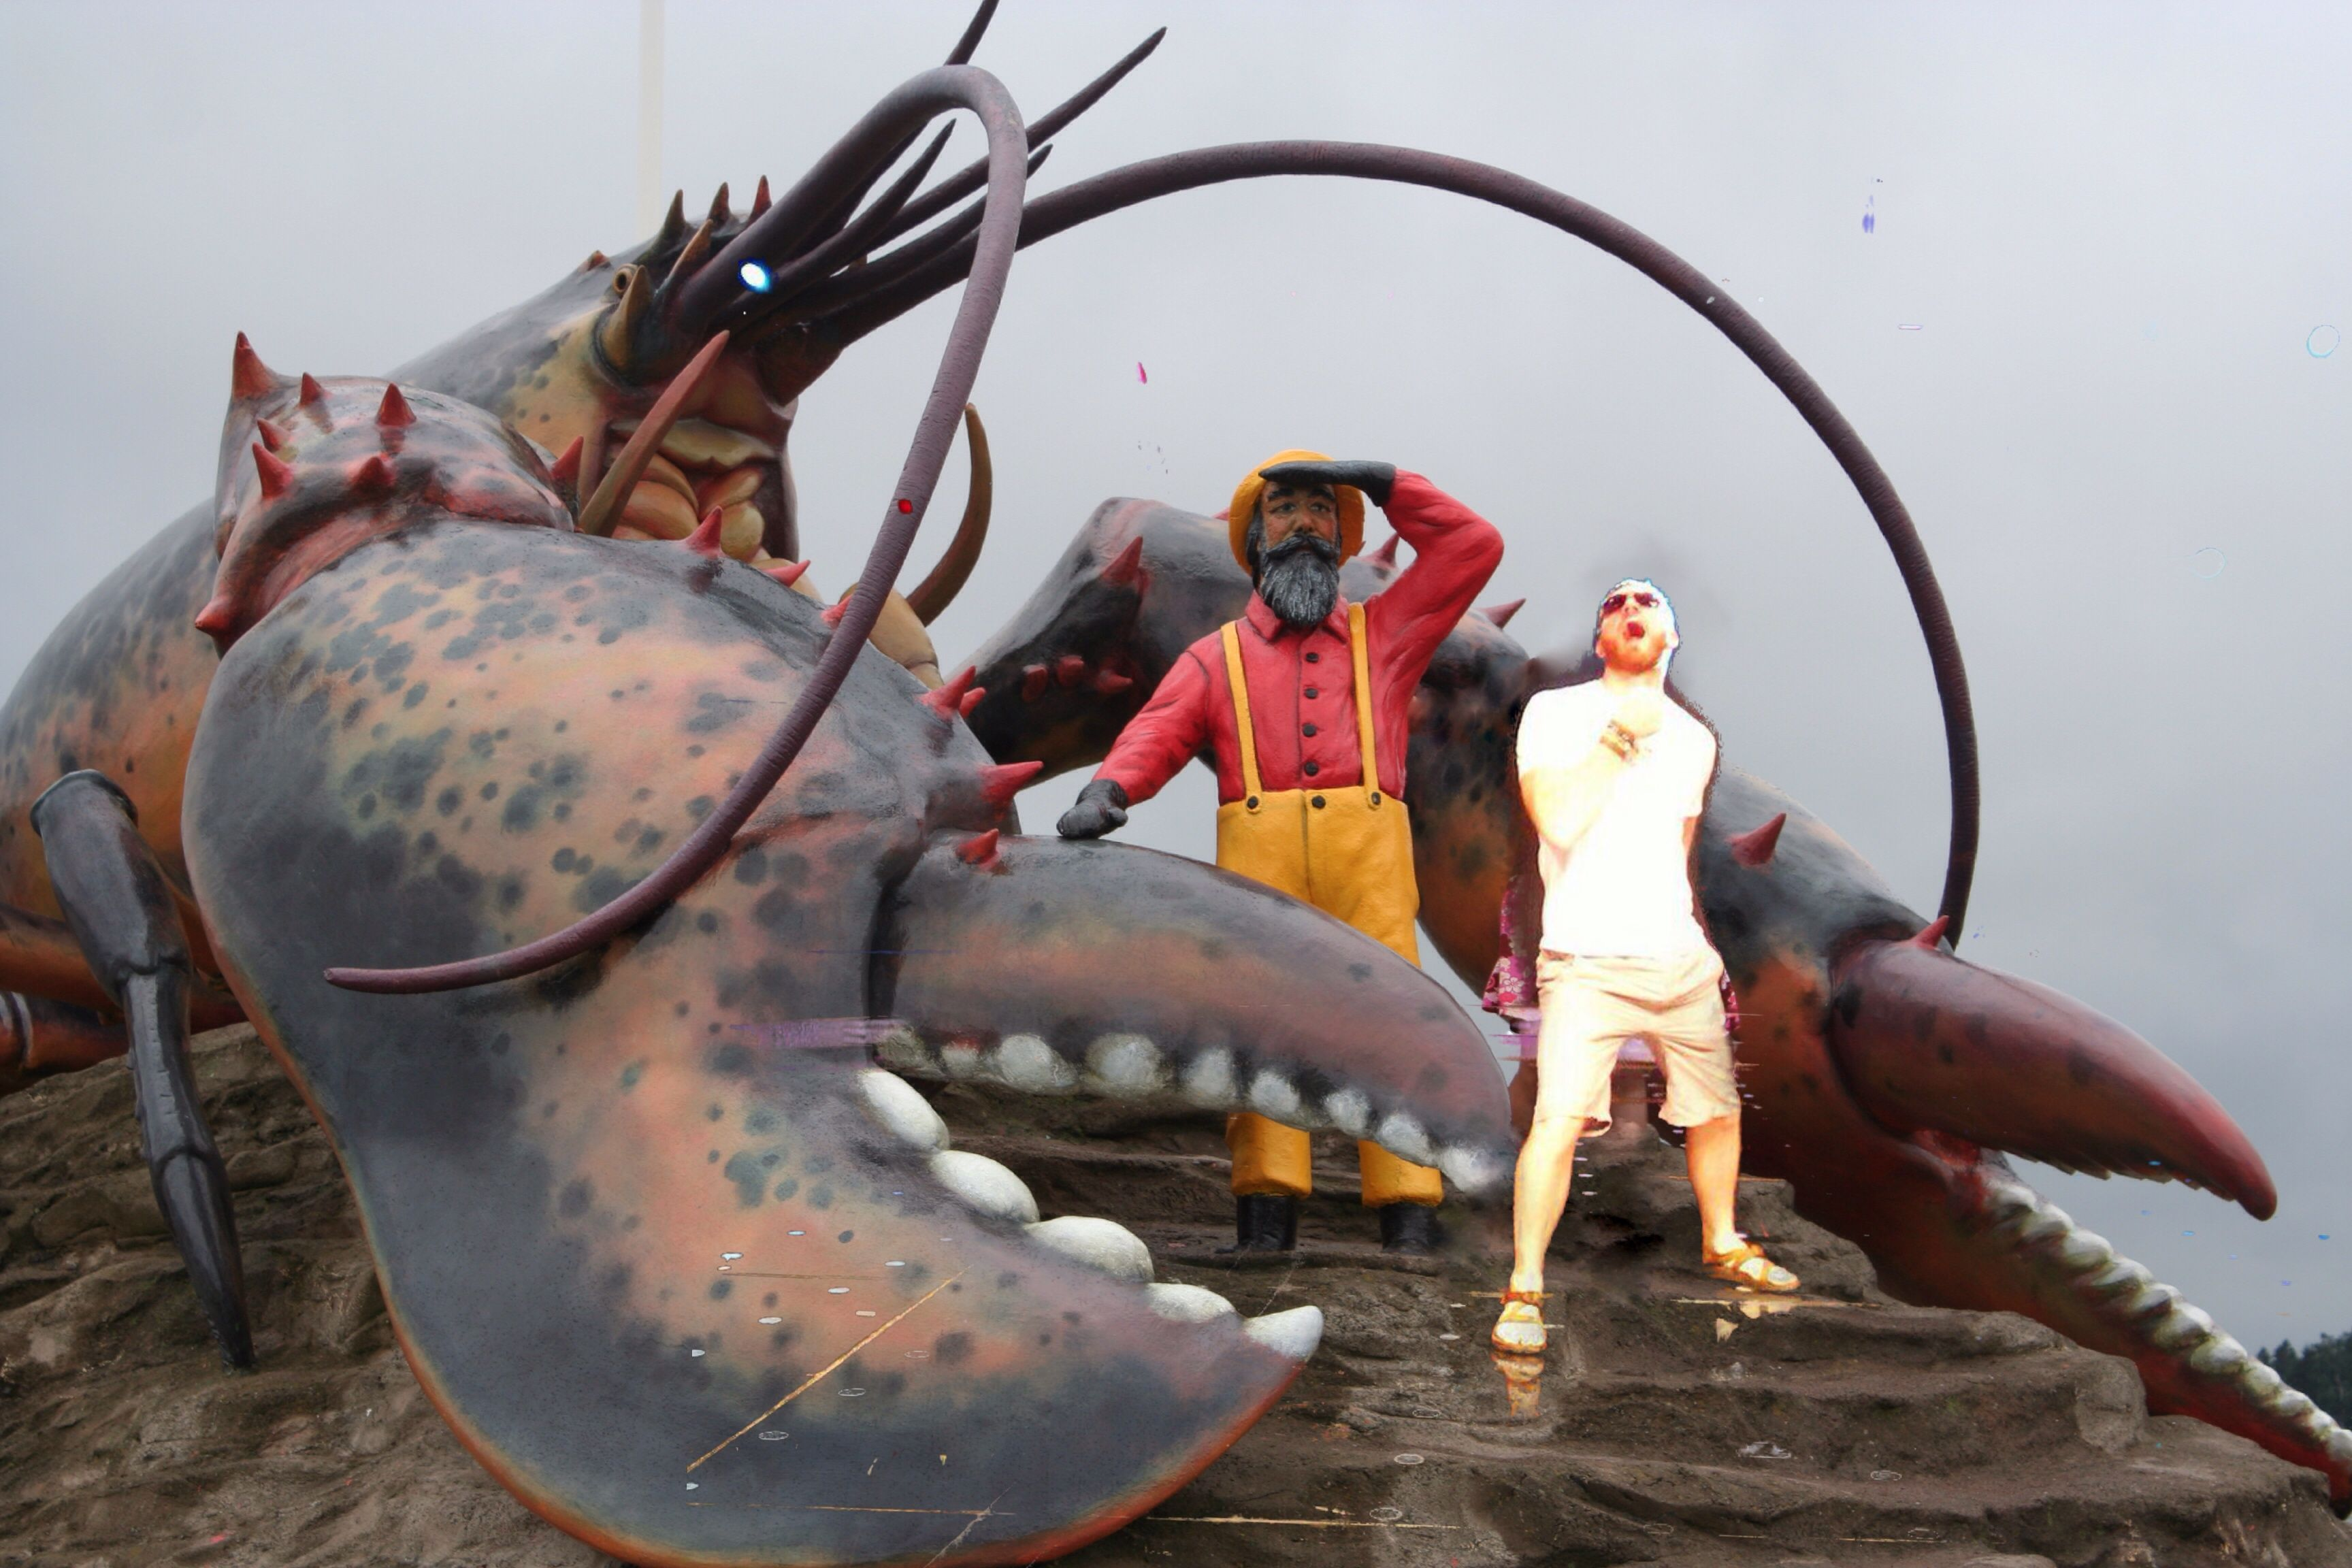 That time when I was 7 and almost got eaten by a giant lobster